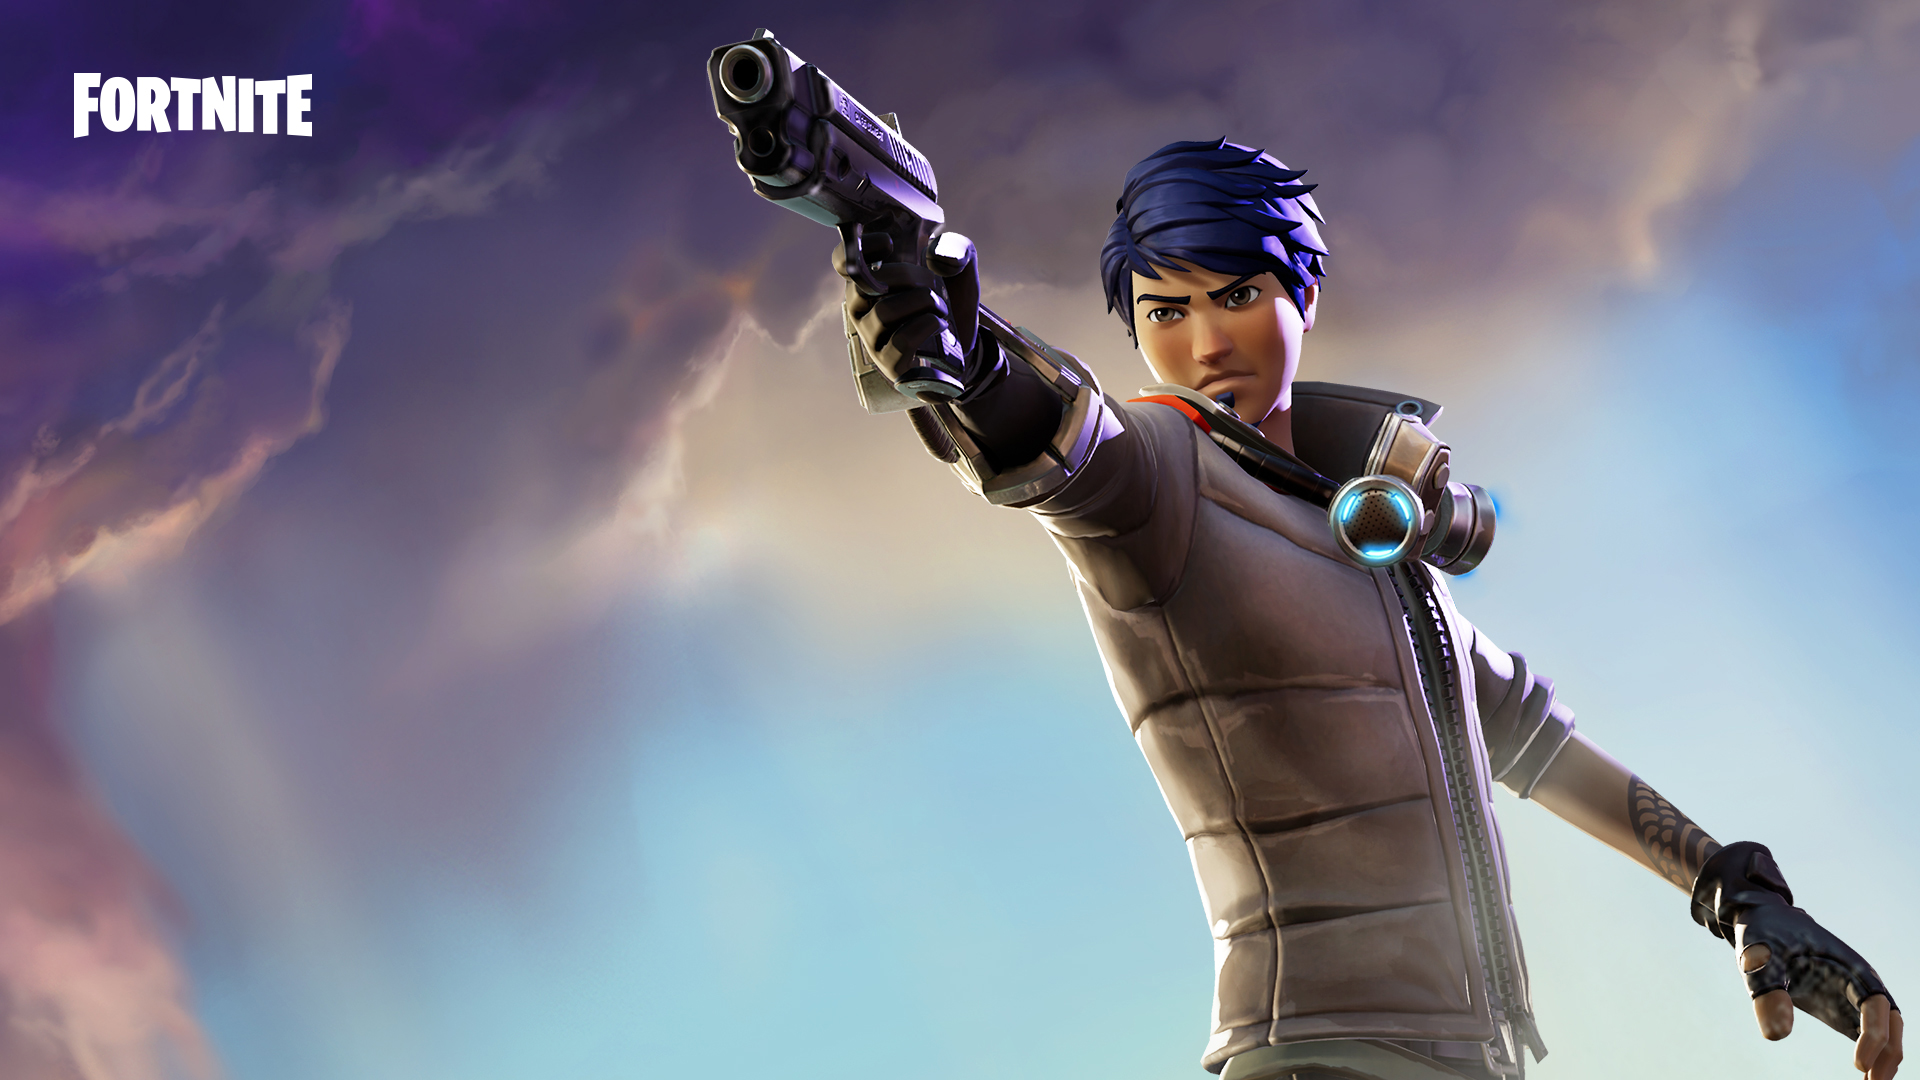 Fortnite%2Fblog%2Fthe-early-access-season-has-begun%2FFortnite_Social_Outlander_1920x1080-1920x1080-90dad203638c1e7c7bddb23bb1d23dfe82e96372